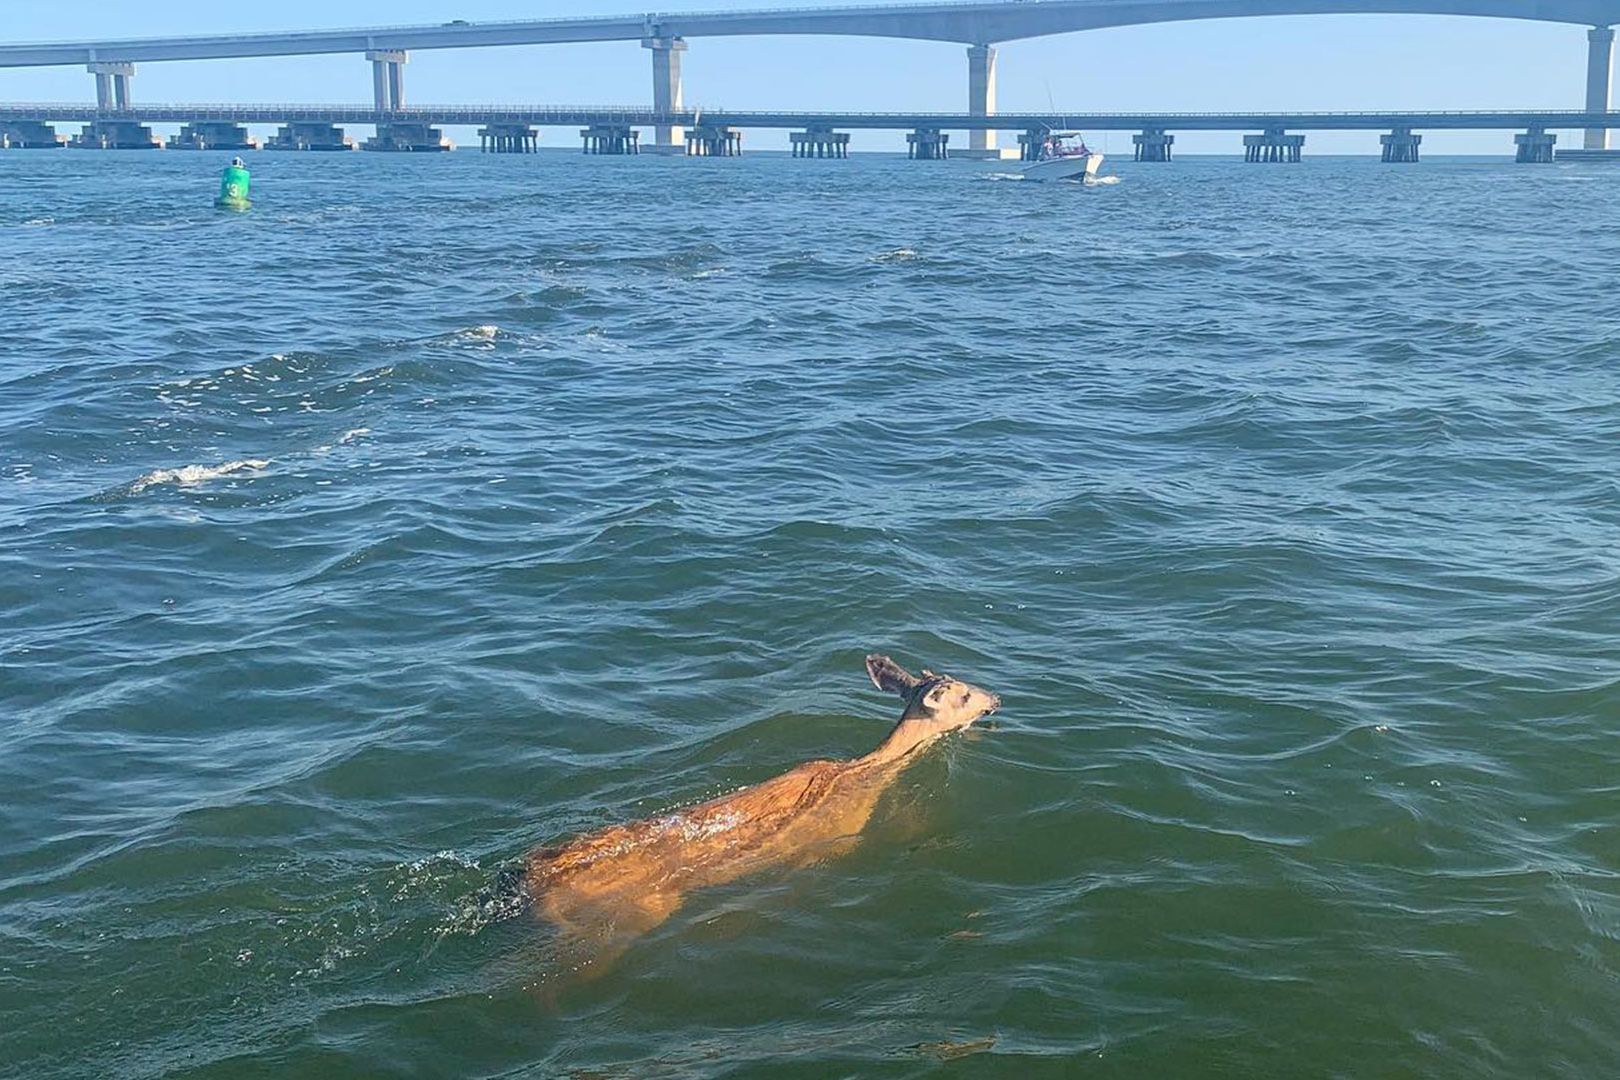 Boaters Shocked to Find Deer Swimming Across Dangerous Outer Banks Inlet